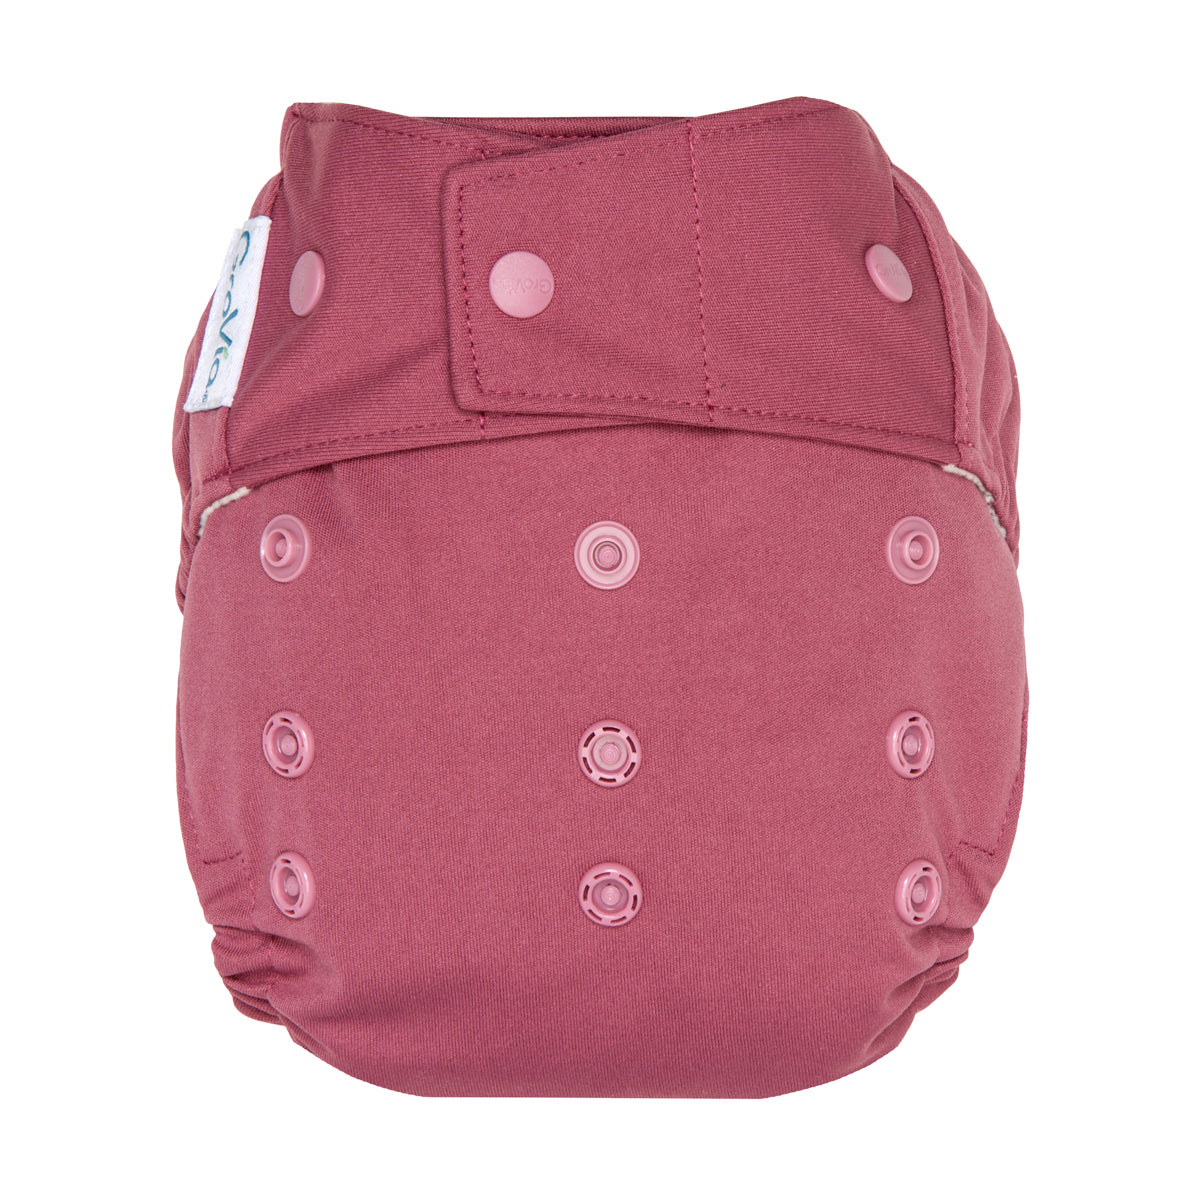 Petal Diaper Shell with Snaps - Crunch Natural Parenting is where to buy